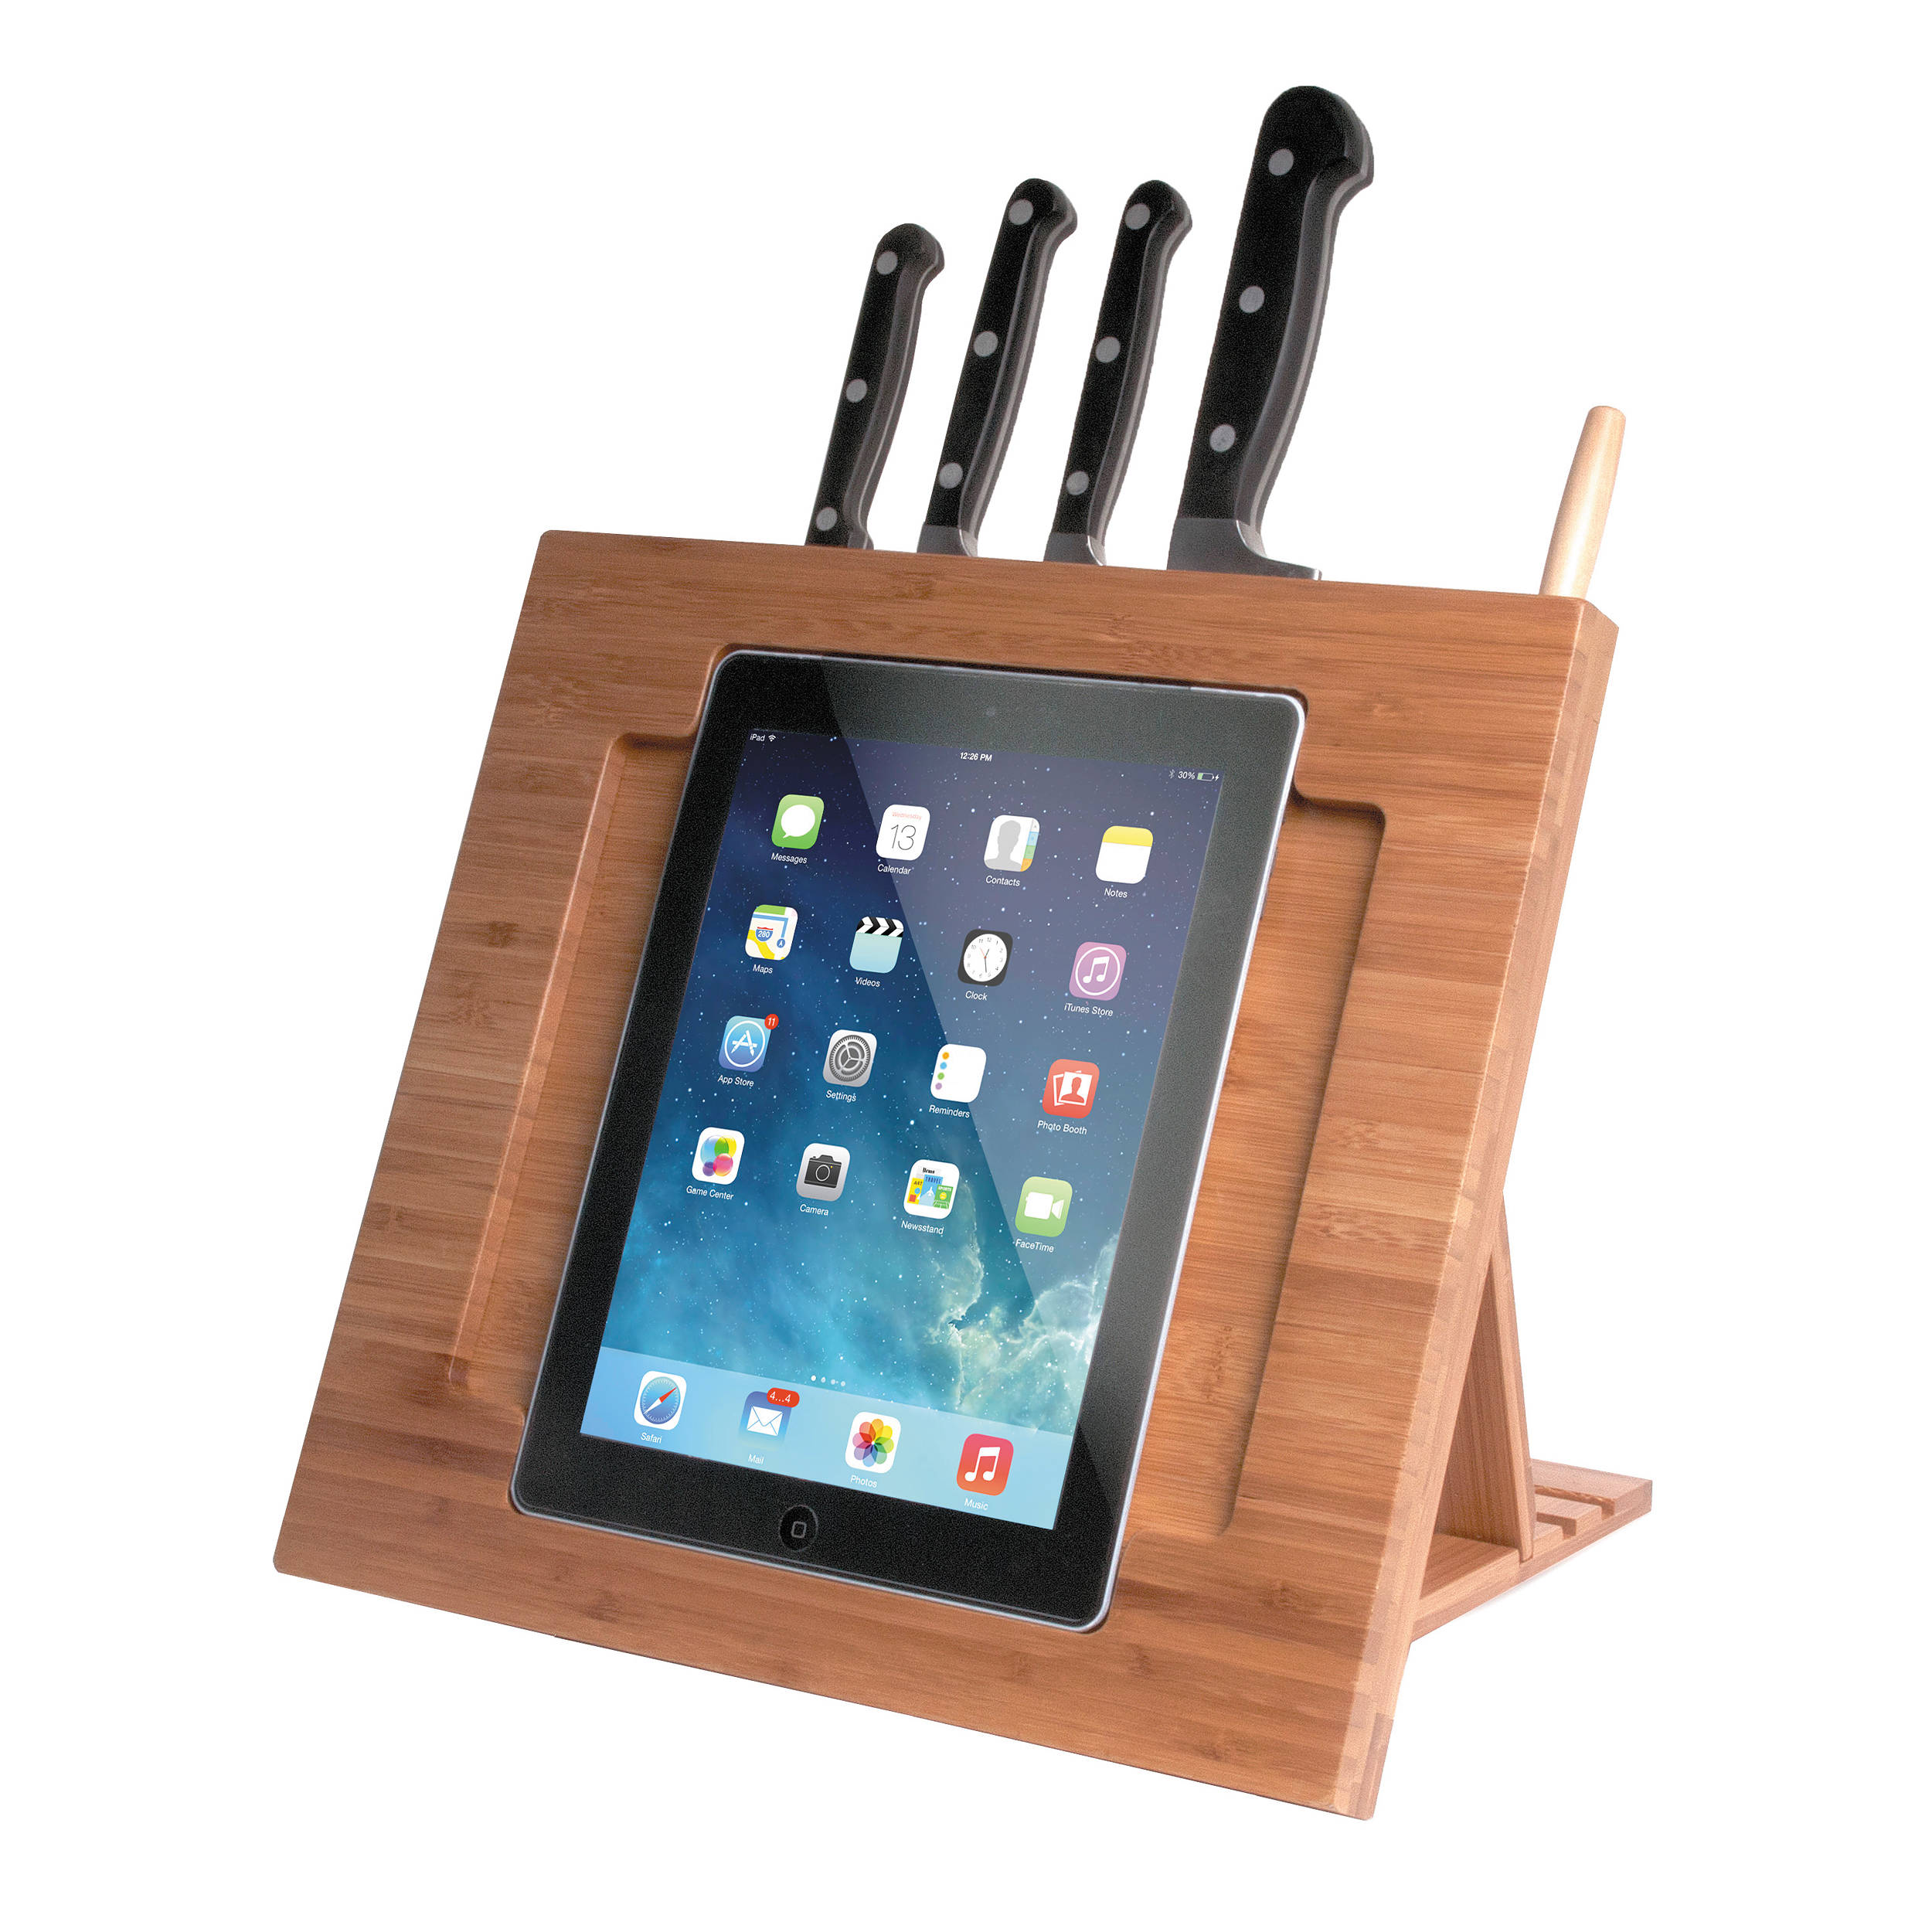 Cta Digital Bamboo Adjustable Kitchen Stand For Ipad Pad